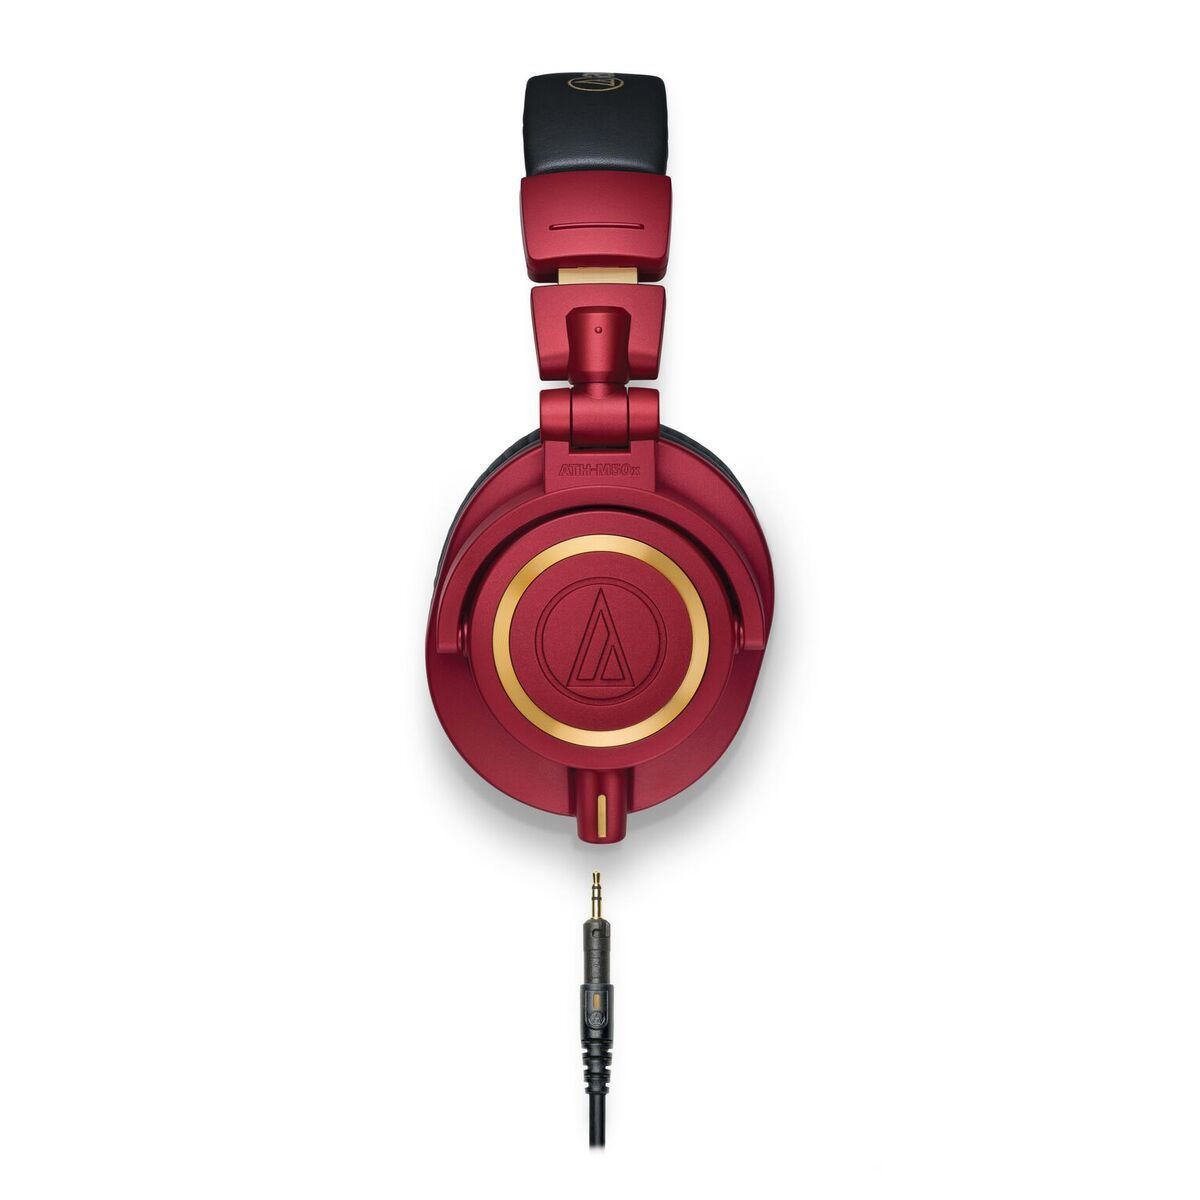 Audio-Technica ATH-M50xRD Red Limited Edition Studio Headphones - side view